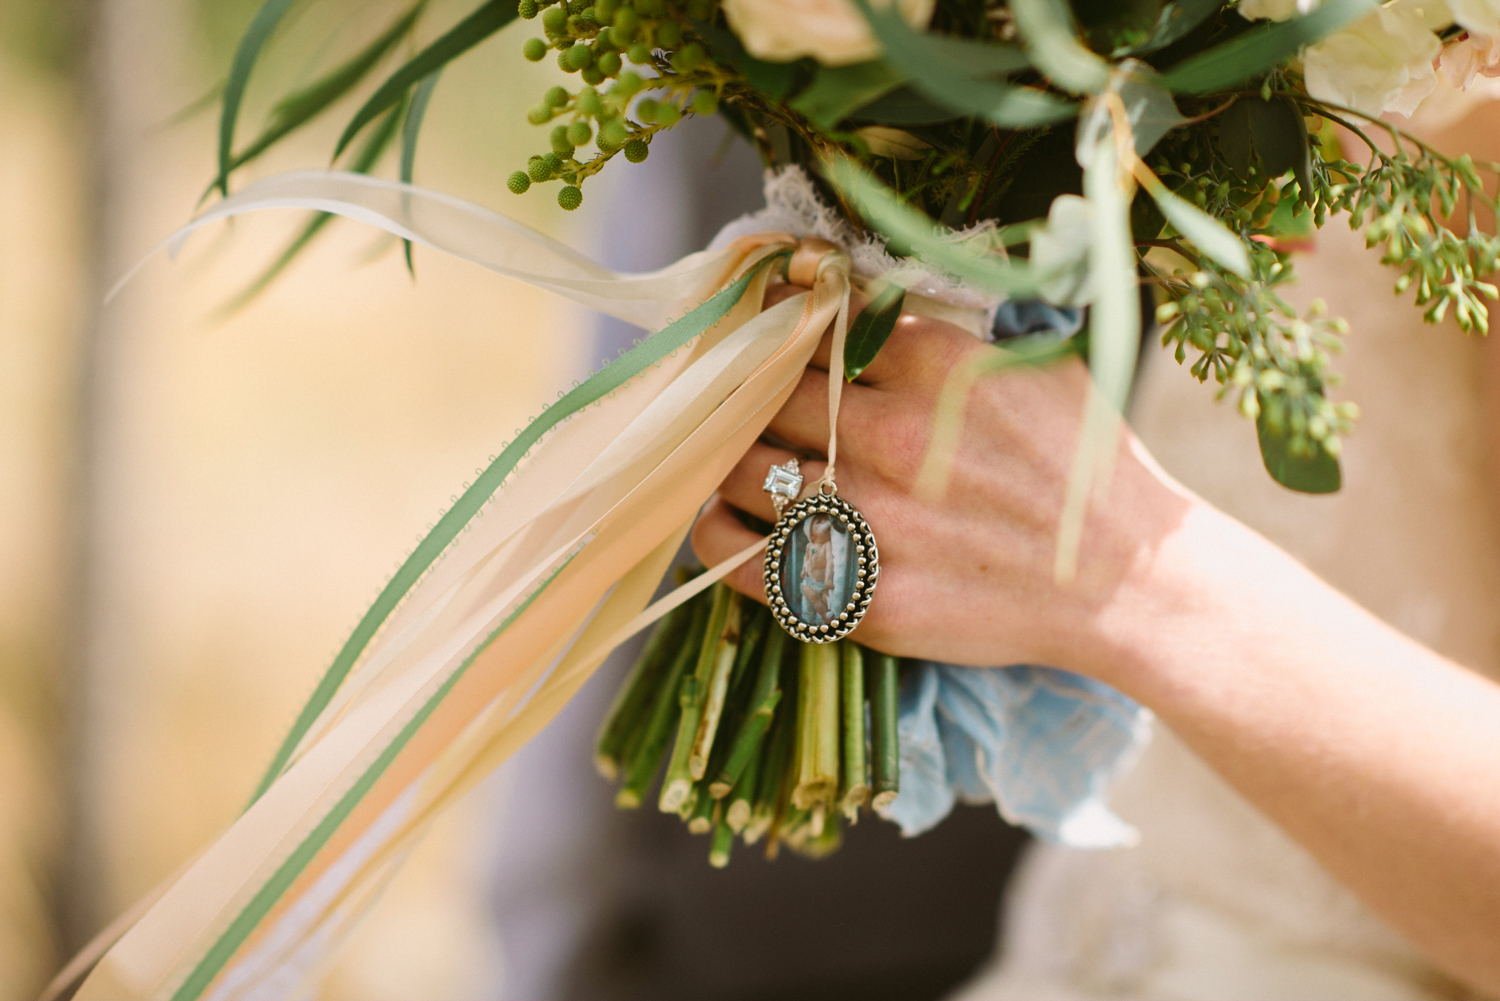 Flowers by Lace and Lilies / Colorado wedding florist - peach, sage, green, white, ivory, blush - natural, organic, romantic, whimsical - Fort Collins, Grand Lake, Destination, Travel - bridal bouquet, wrap, sentimental item, family photo, hanging ribbon, eucalyptus